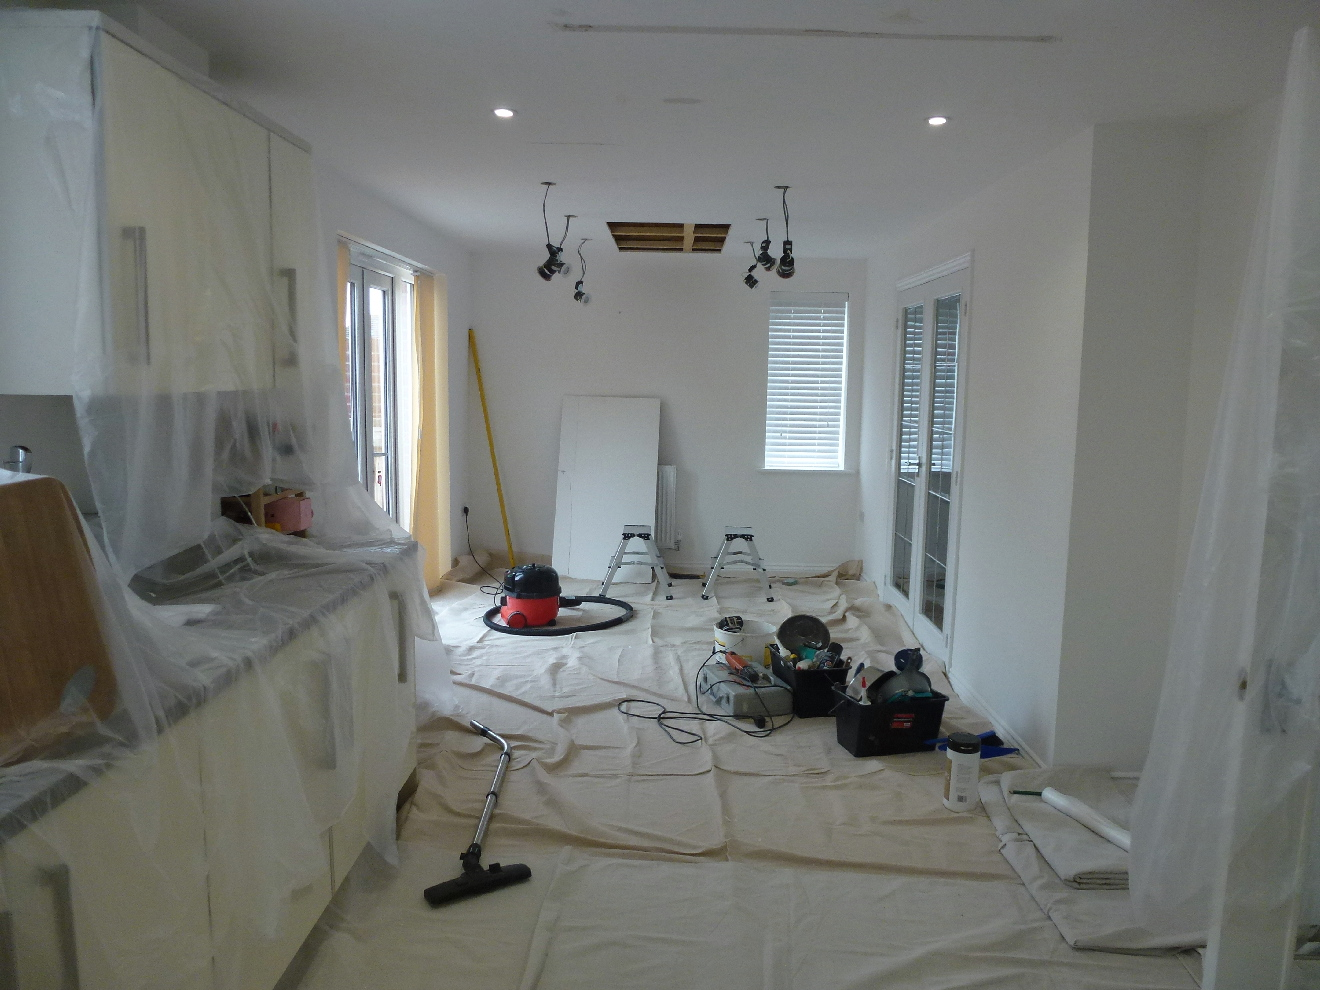 Taylor Wimpey remedial work after 9 months